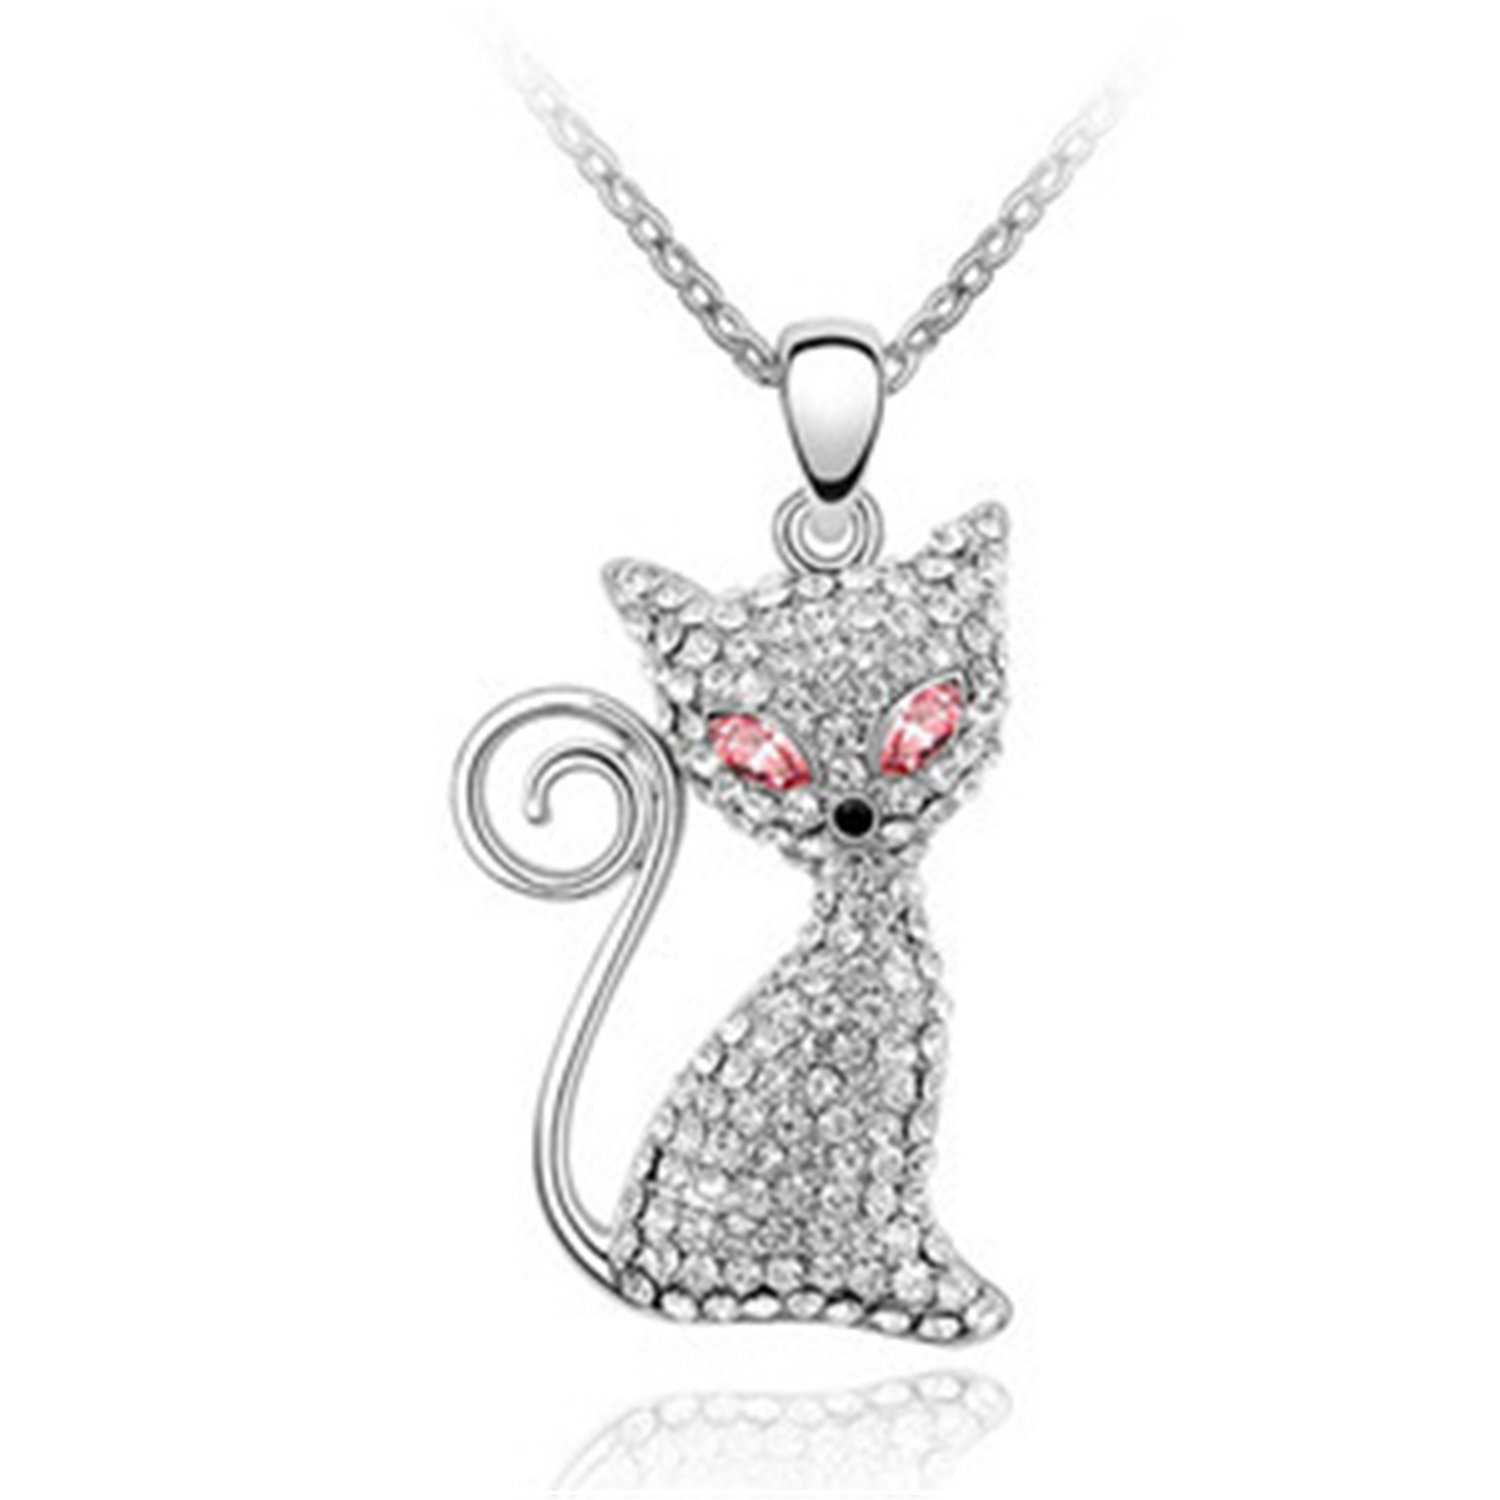 Custom Made Any NameKitty Molly Crystals Cat Pendant Necklace, Elegant and eye-catching Women Fashion Jewelry-Light Rose